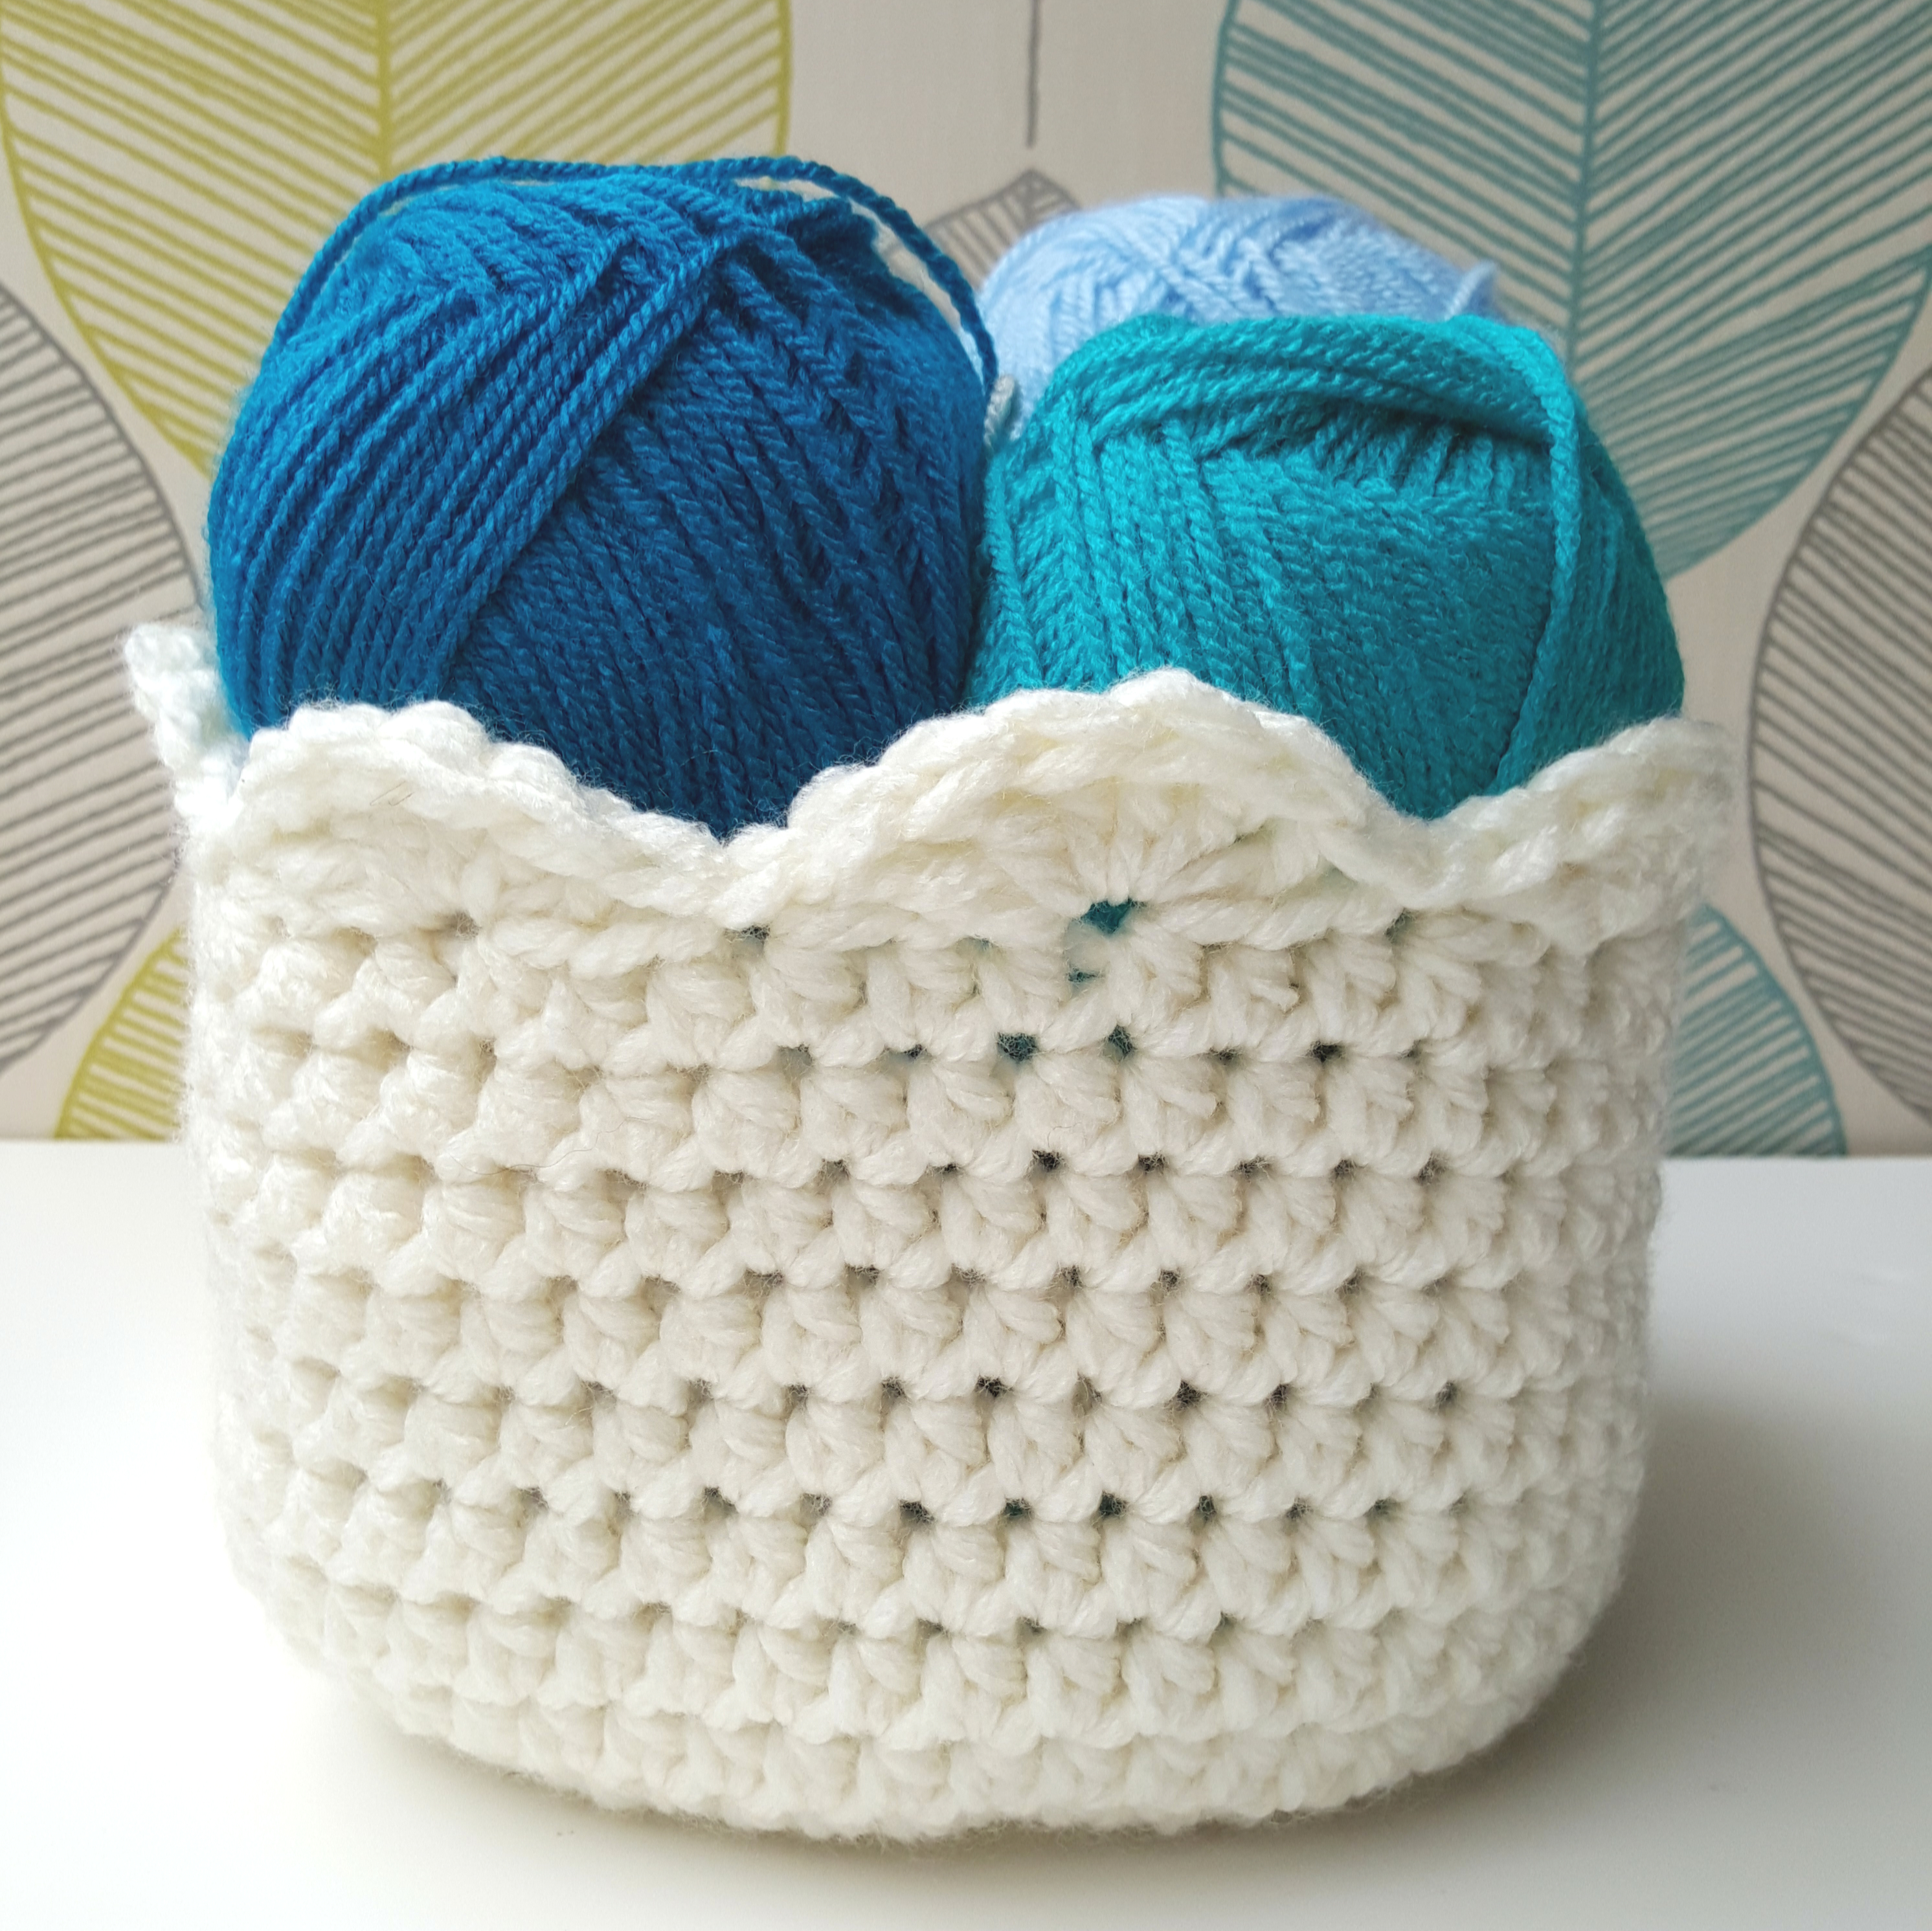 How to Crochet a Basket: FREE Tutorial on Bluprint!